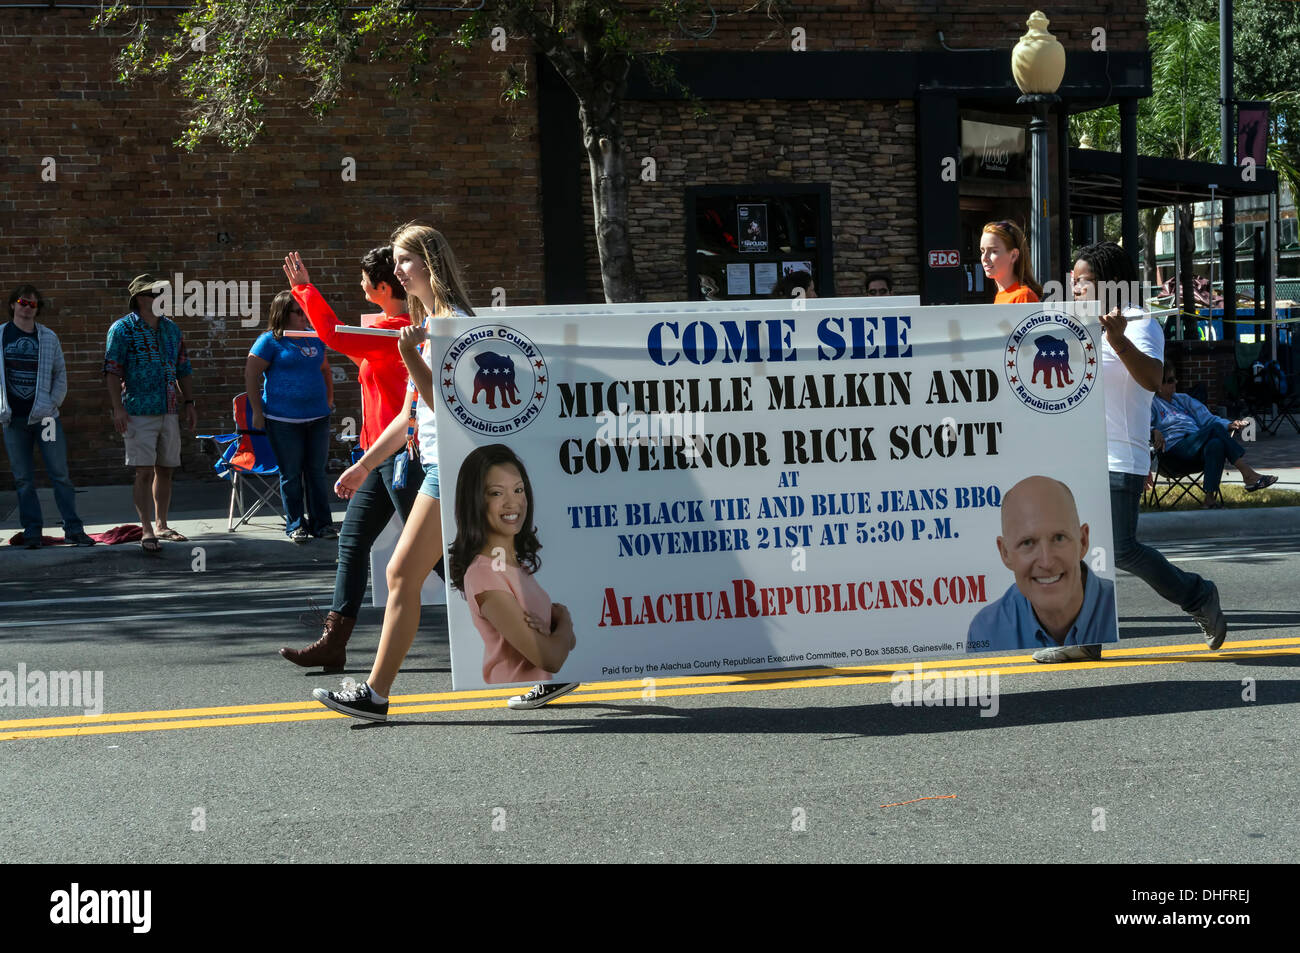 Young Alachua Republicans carry banner announcing black tie and blue jeans BBQ with Michelle Malkin and Governor - Stock Image